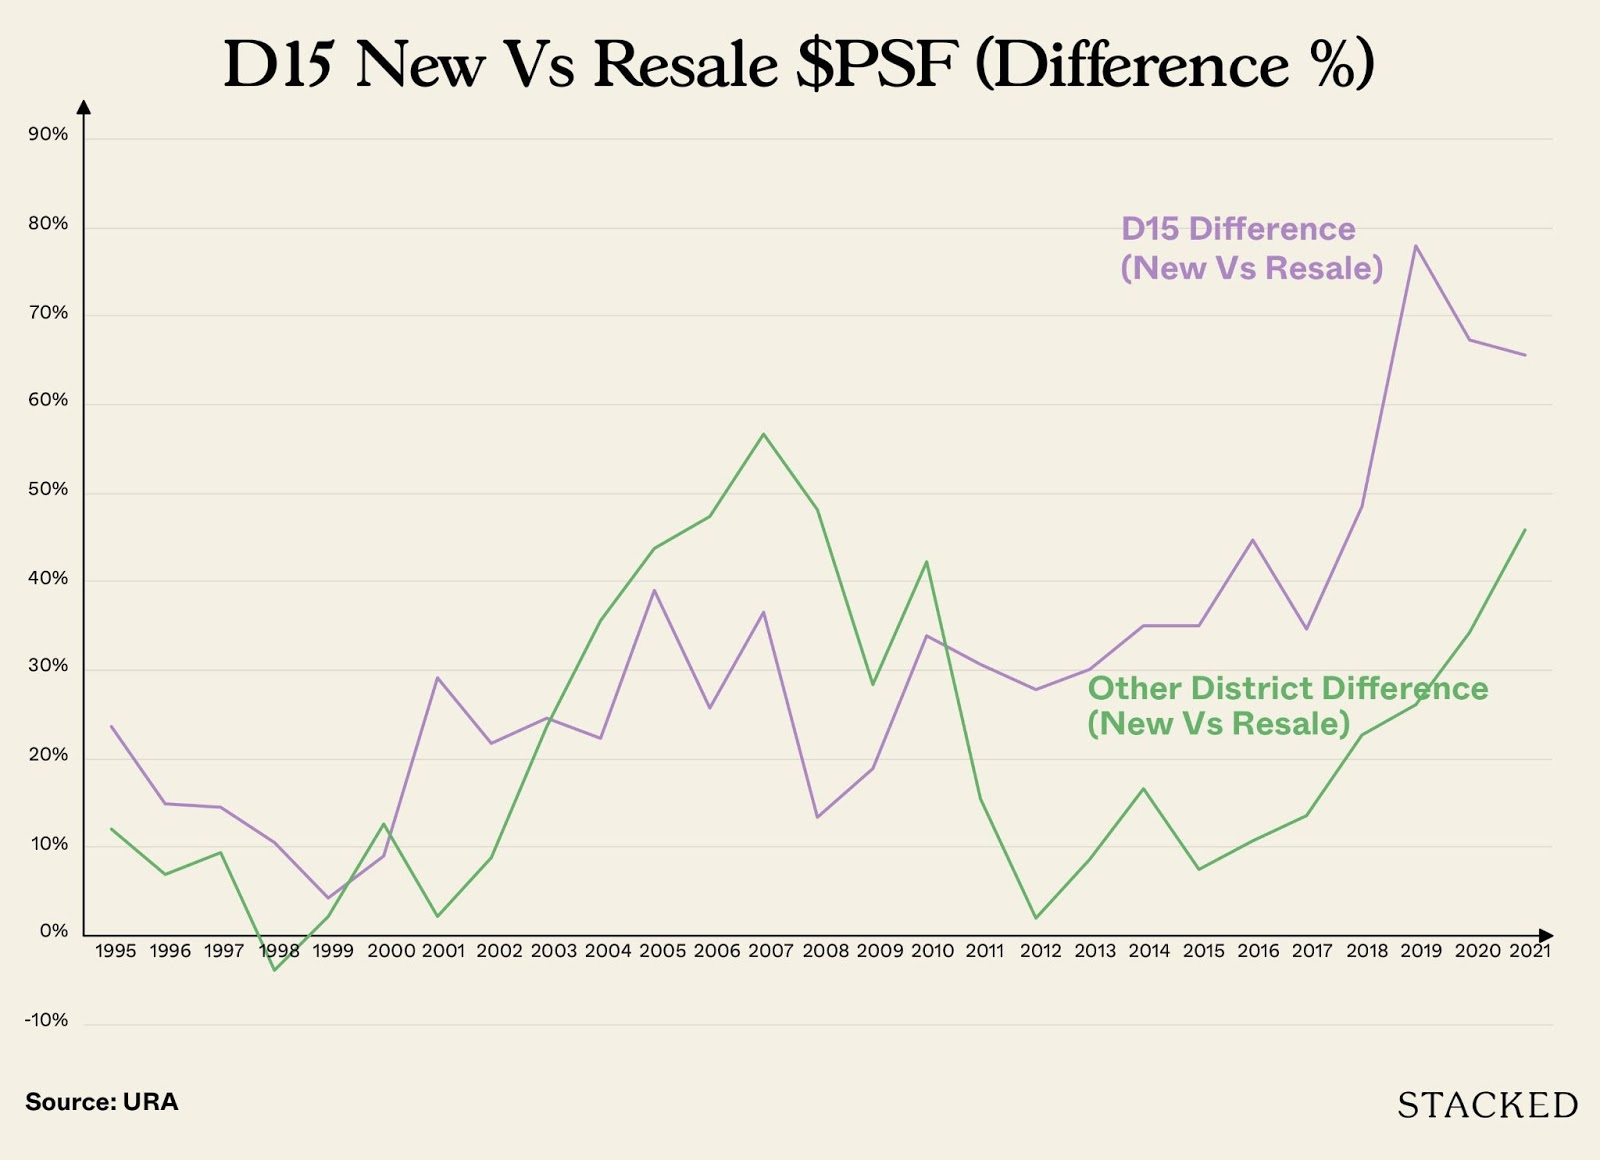 d15 vs other districts